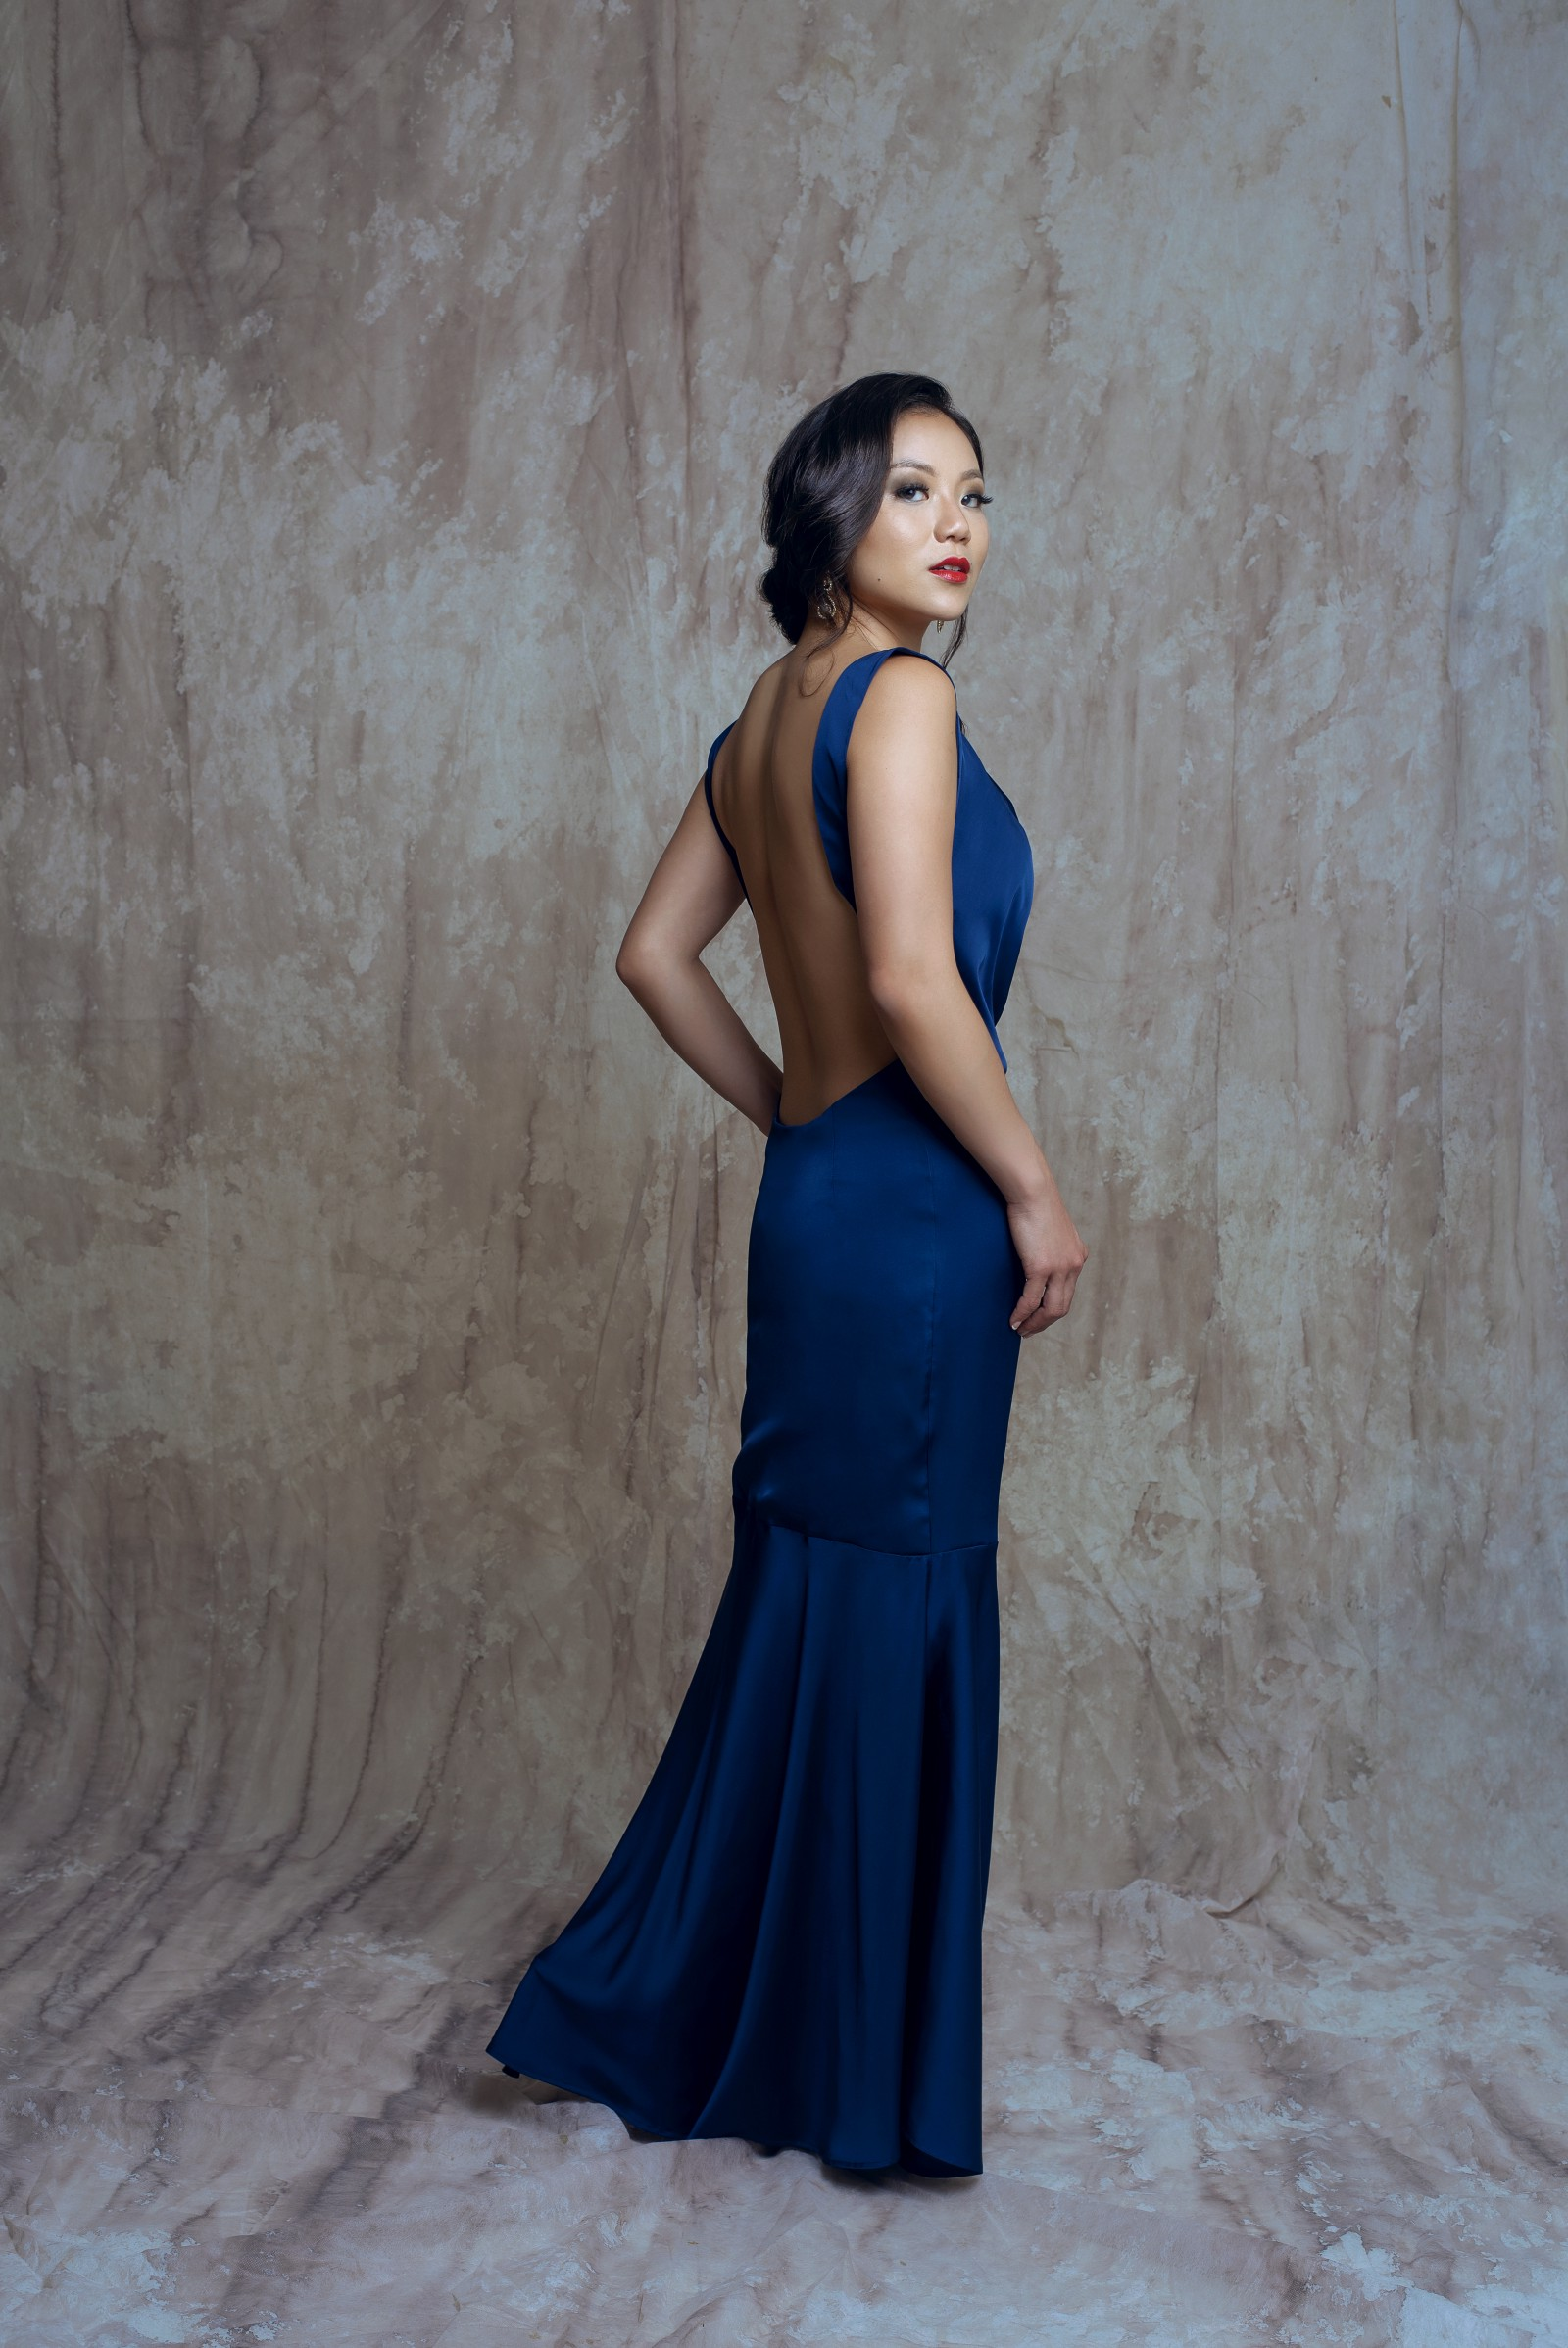 Sarah Chen wearing the Michelle Dress in midnight blue by Bastet Noir, photo by RaisaAzam, MUA: pearltji